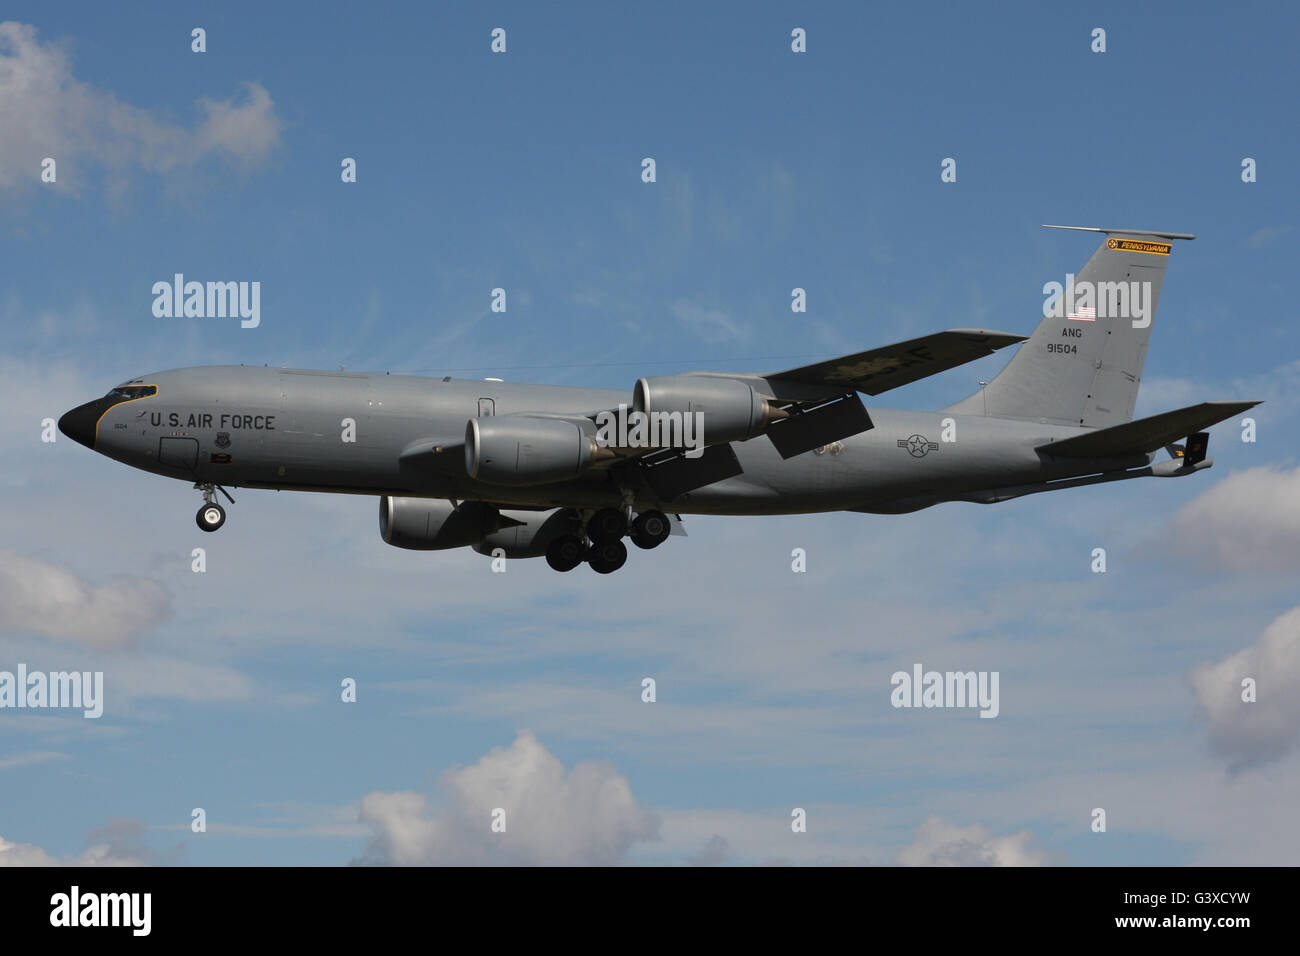 US AIR FORCE BOEING KC135 TANKER - Stock Image